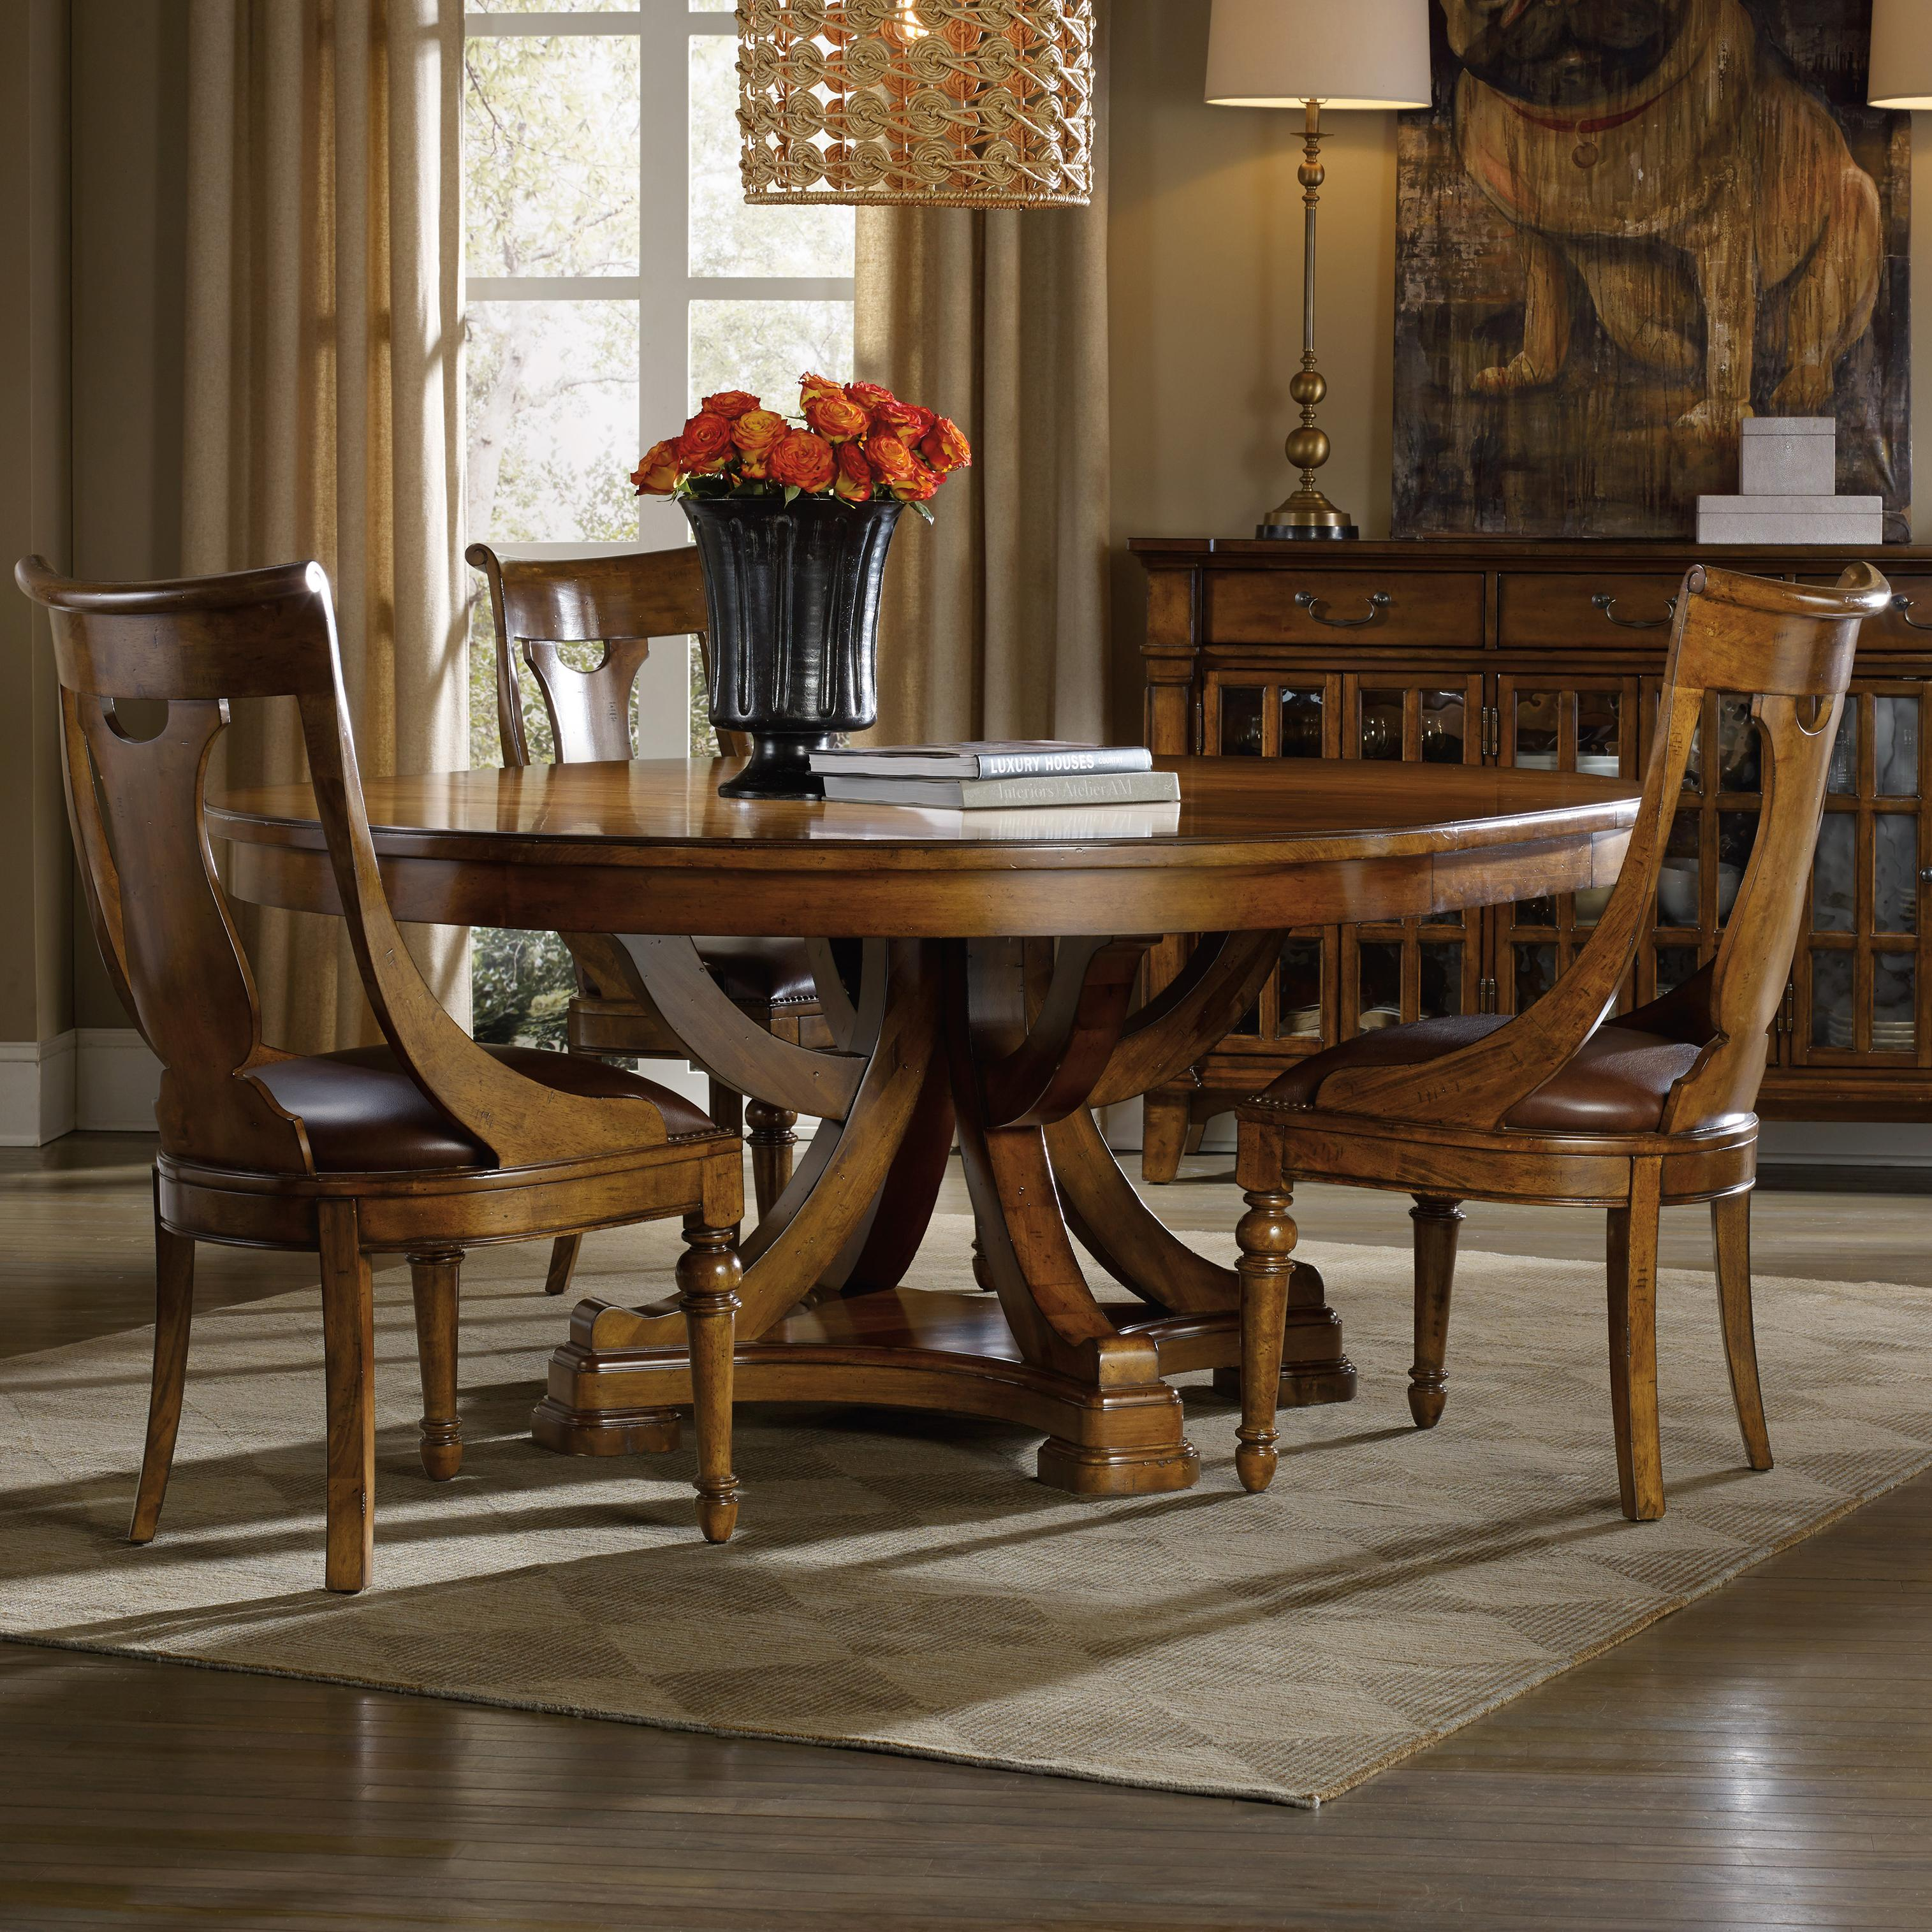 Tynecastle Table and Chair Set by Hooker Furniture at Upper Room Home Furnishings